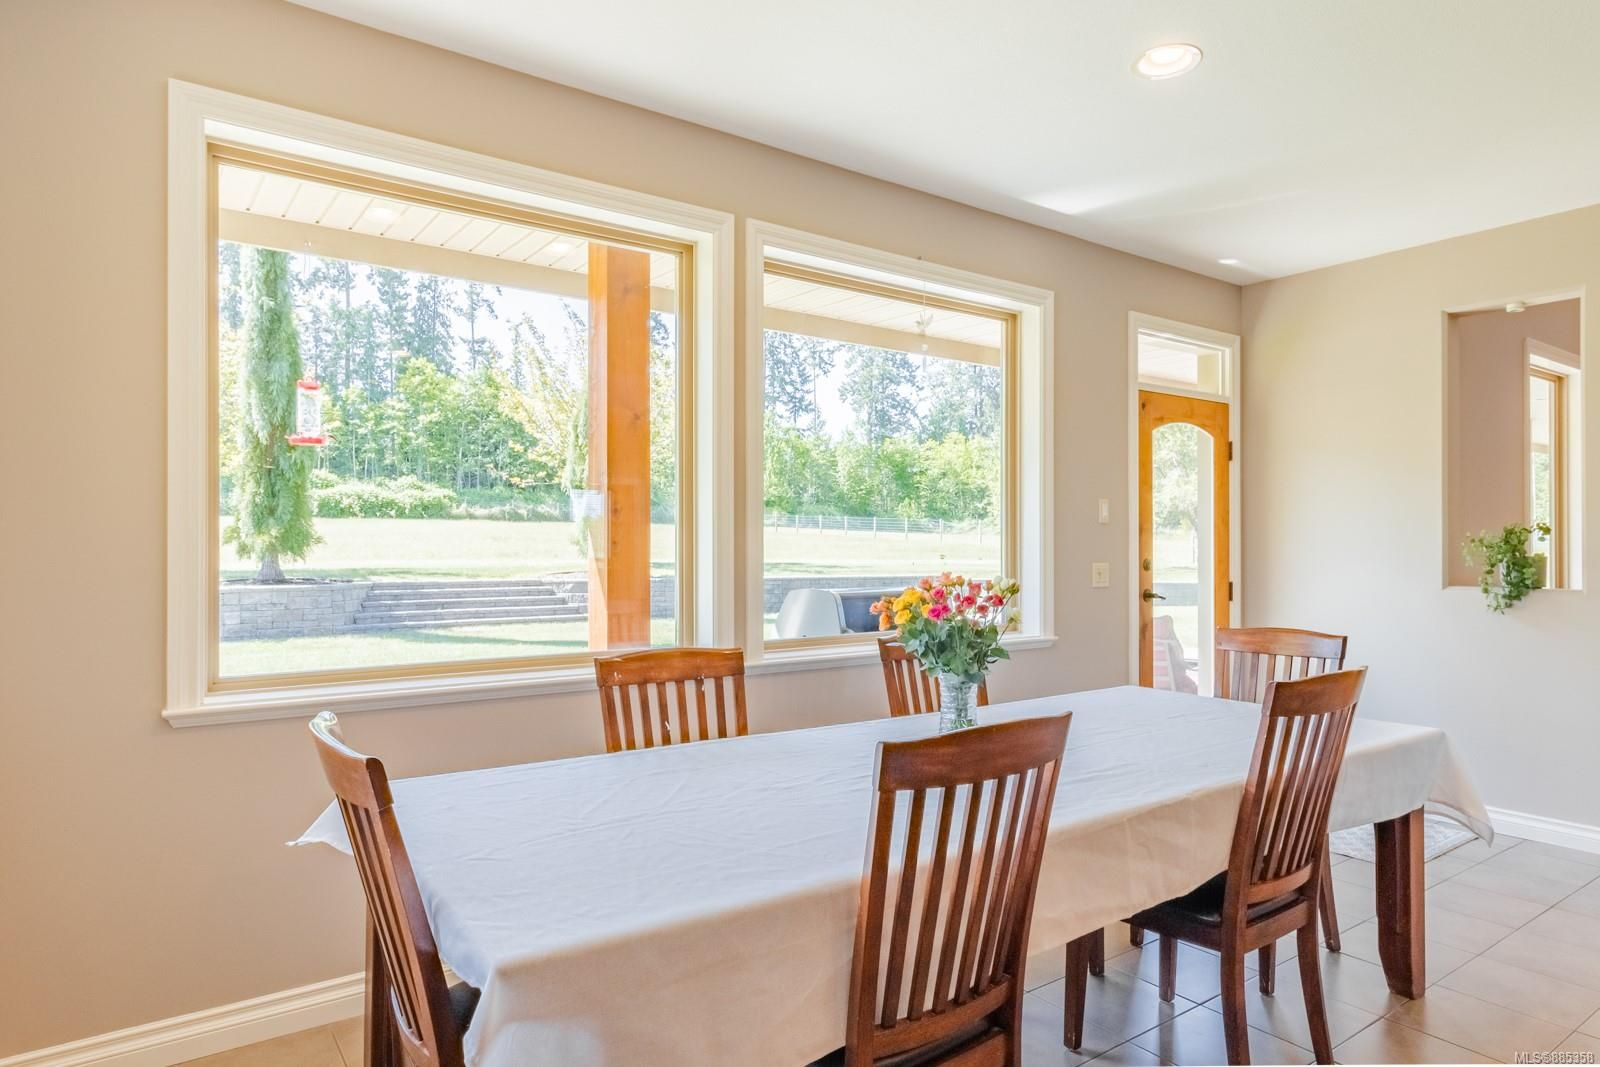 Photo 7: Photos: 2850 Peters Rd in : PQ Qualicum Beach House for sale (Parksville/Qualicum)  : MLS®# 885358